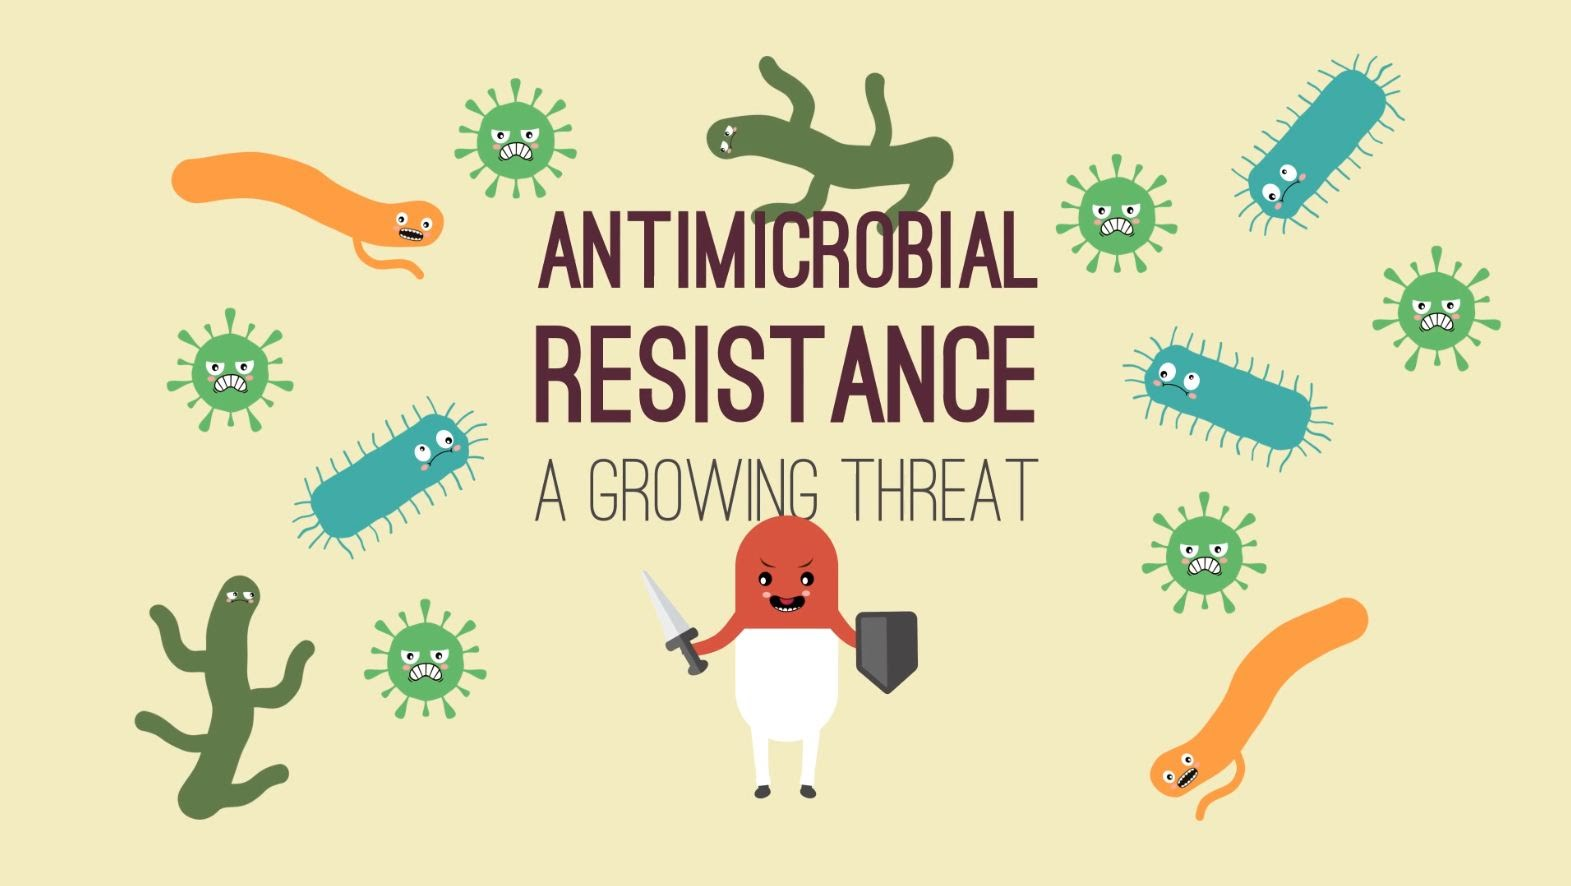 the issue of bacterial resistance in the medical community Bacterial resistance bacterial resistance is a problem that has profoundly impacted the medical community bacterial resistance results when bacteria become resistant to individual antibiotics through the development of specific defense mechanisms which render the antibiotic ineffective.